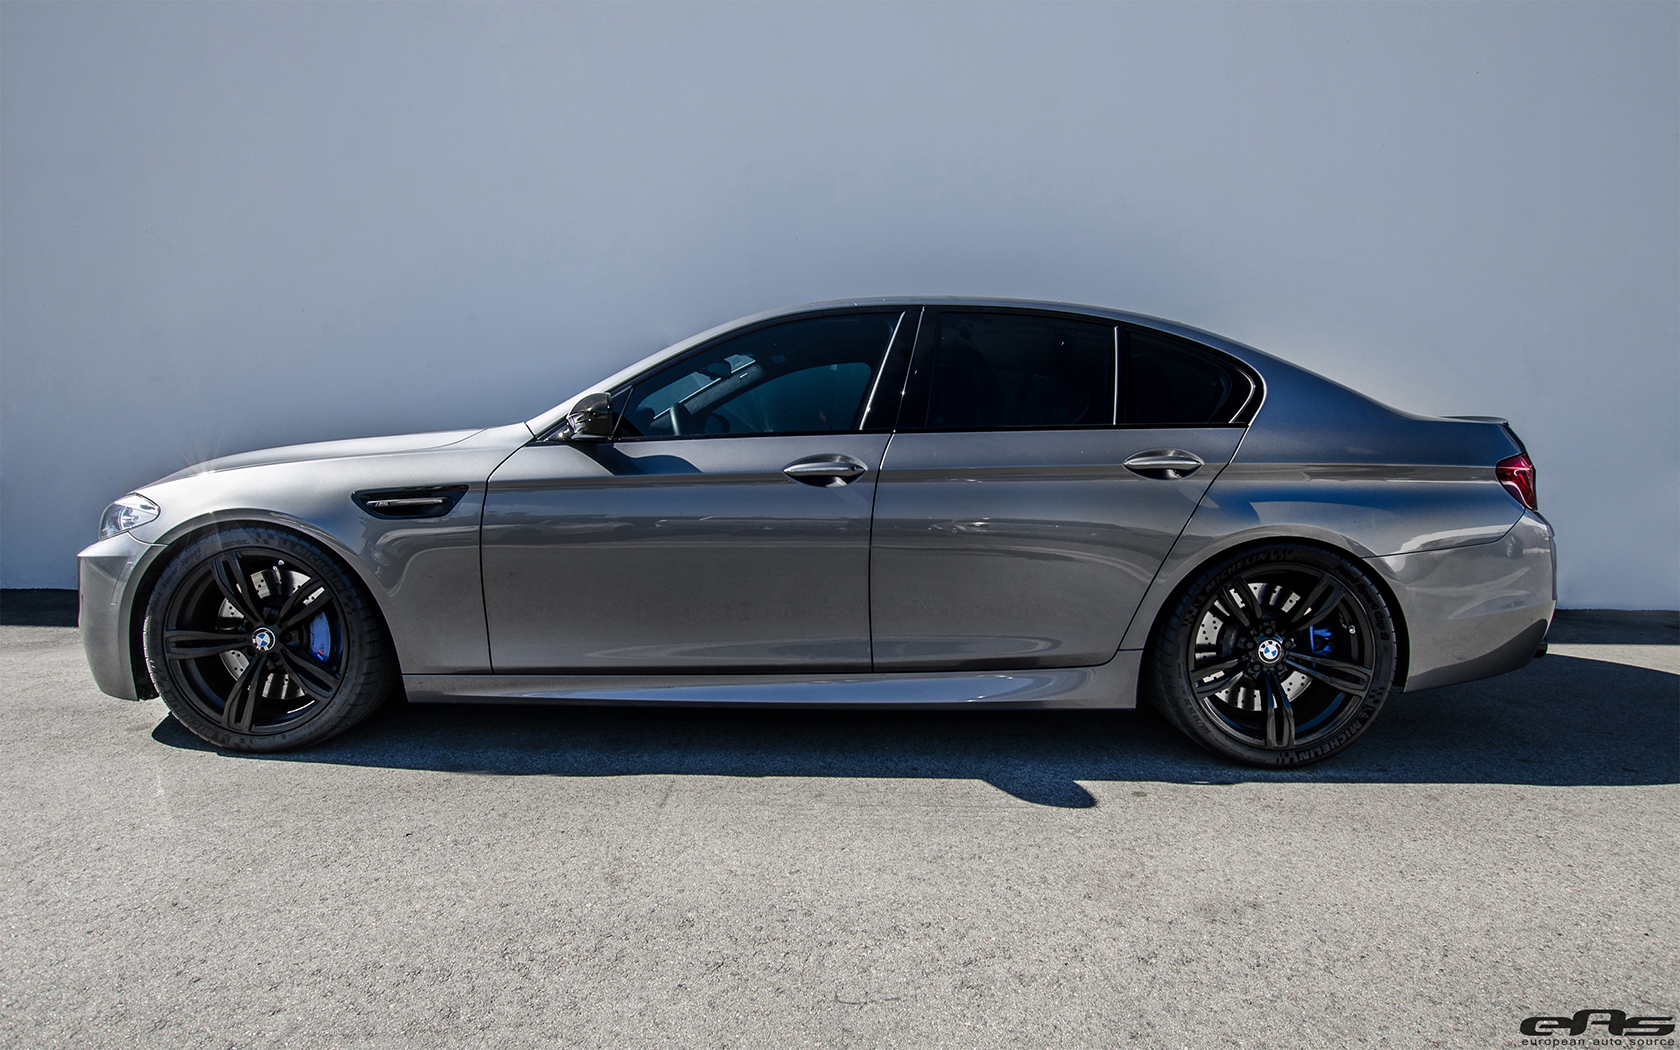 Space Gray Metallic Bmw F10 M5 Tuned By Eas